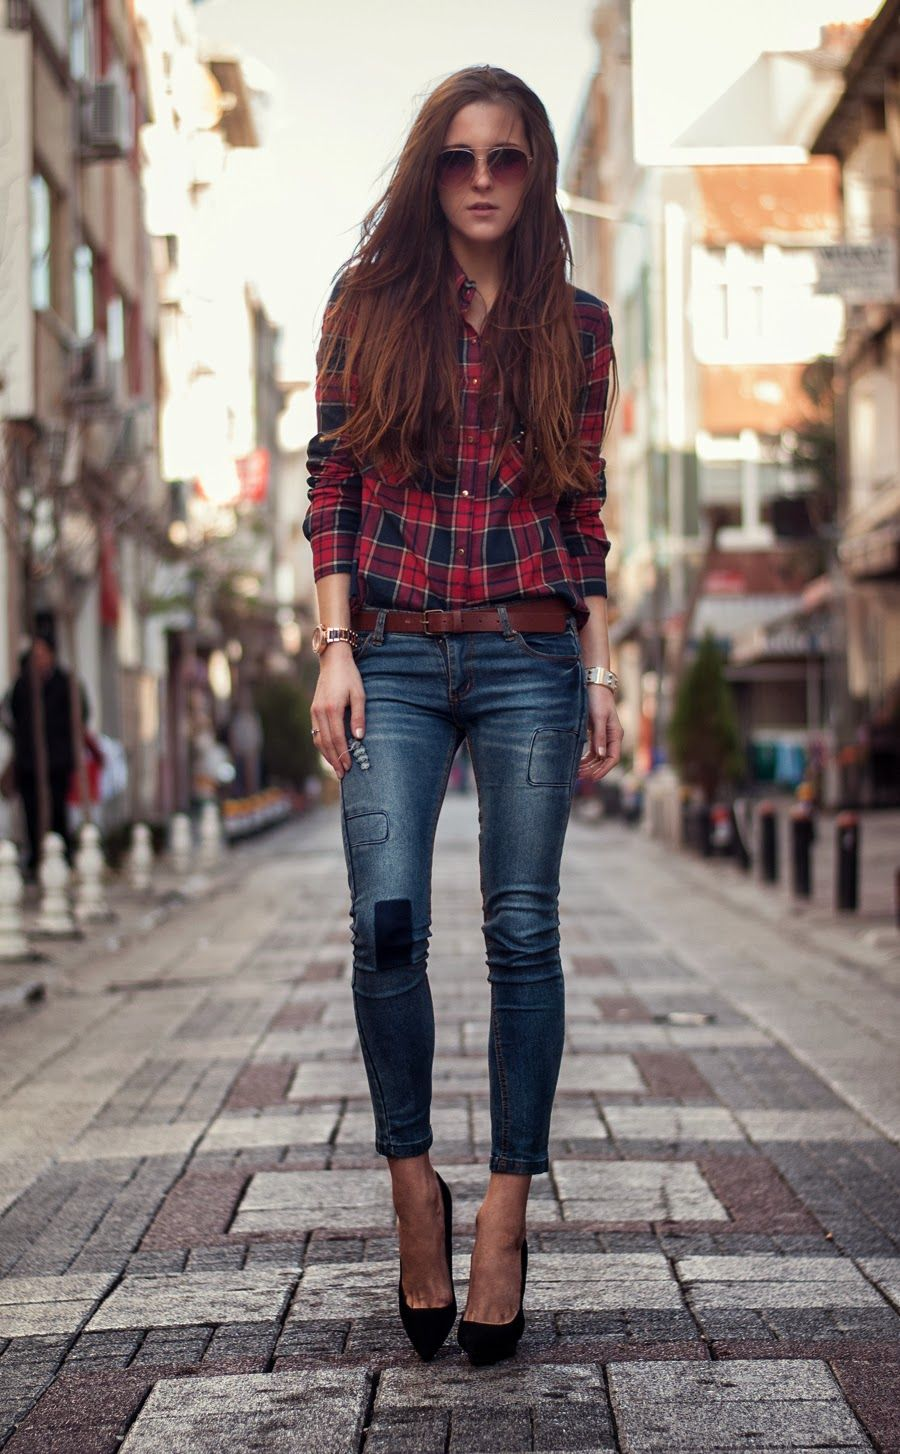 Flannel shirt outfits for women  streetstyle fashionblogger checked shirt outfit denim skinny